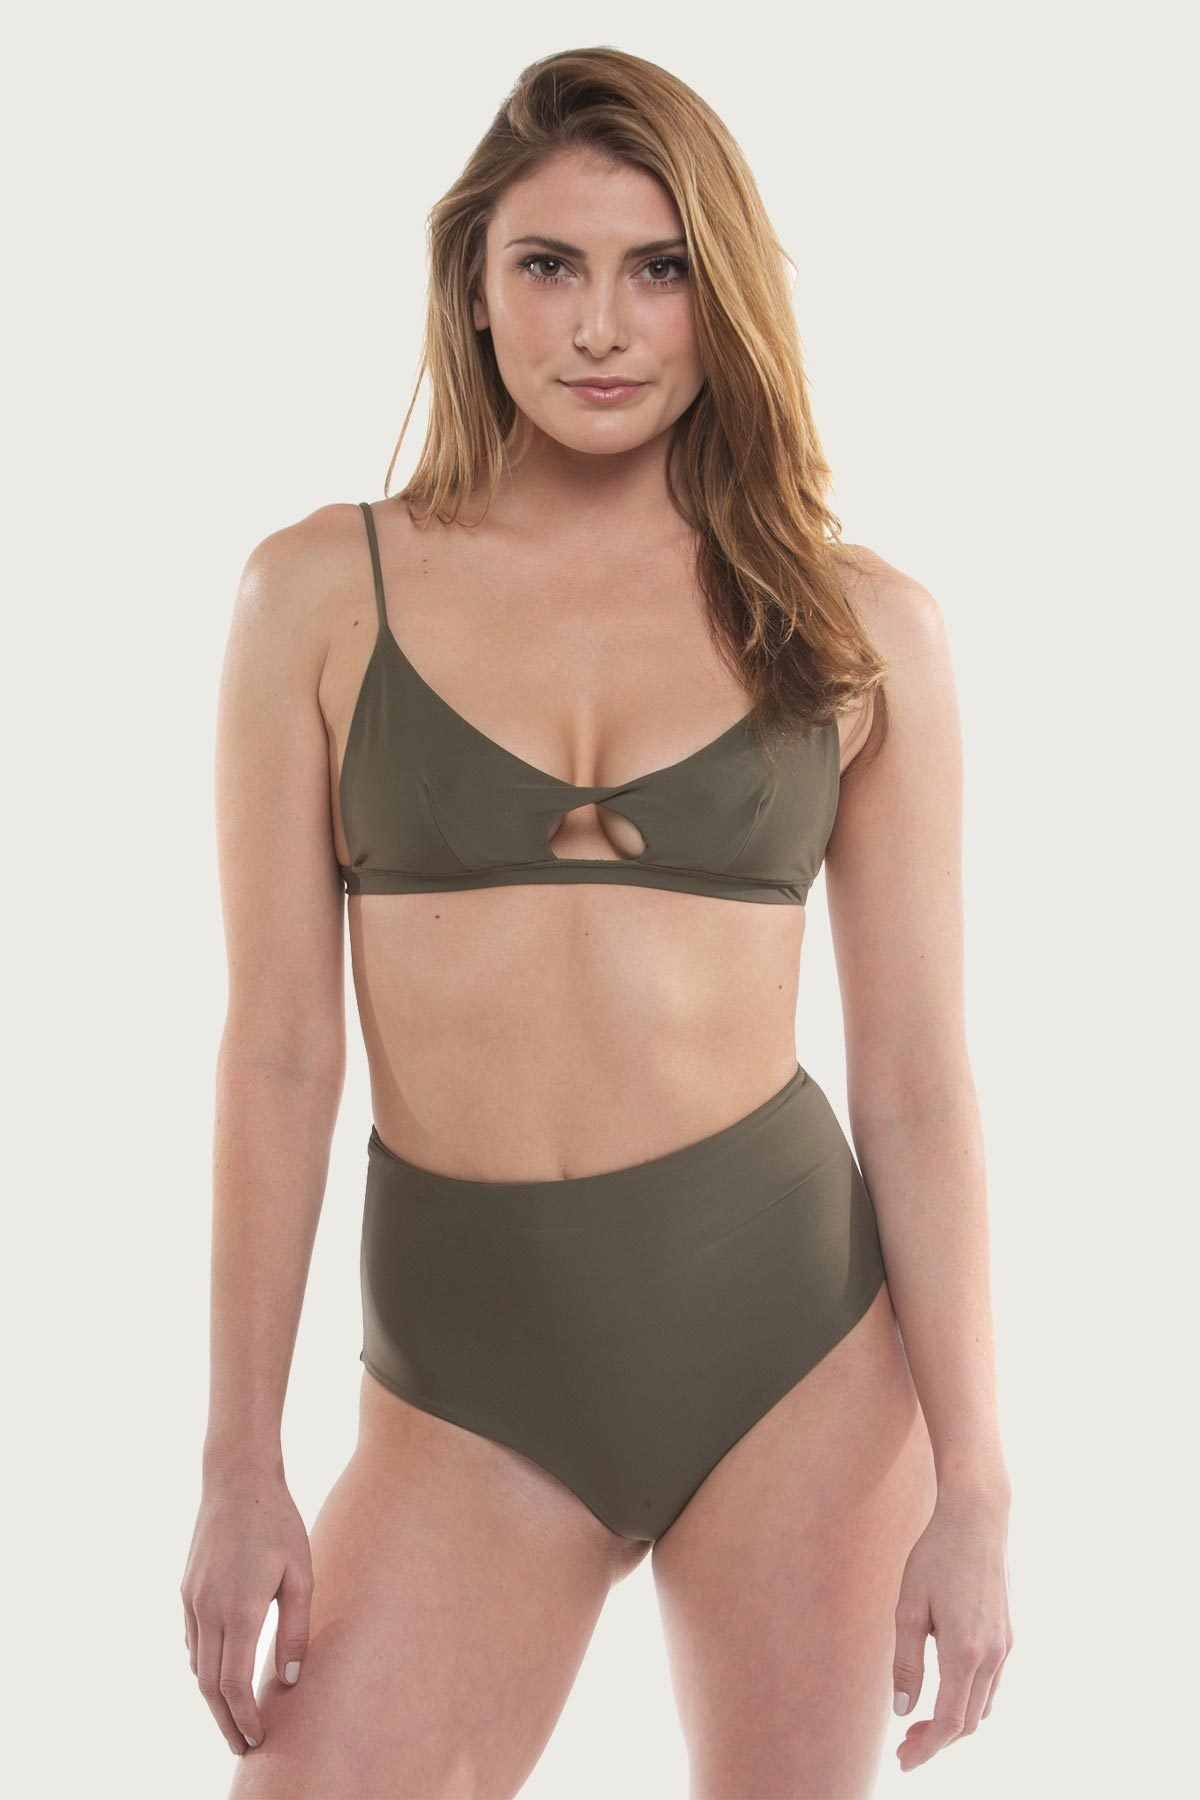 The Jetty Top - Olive Green